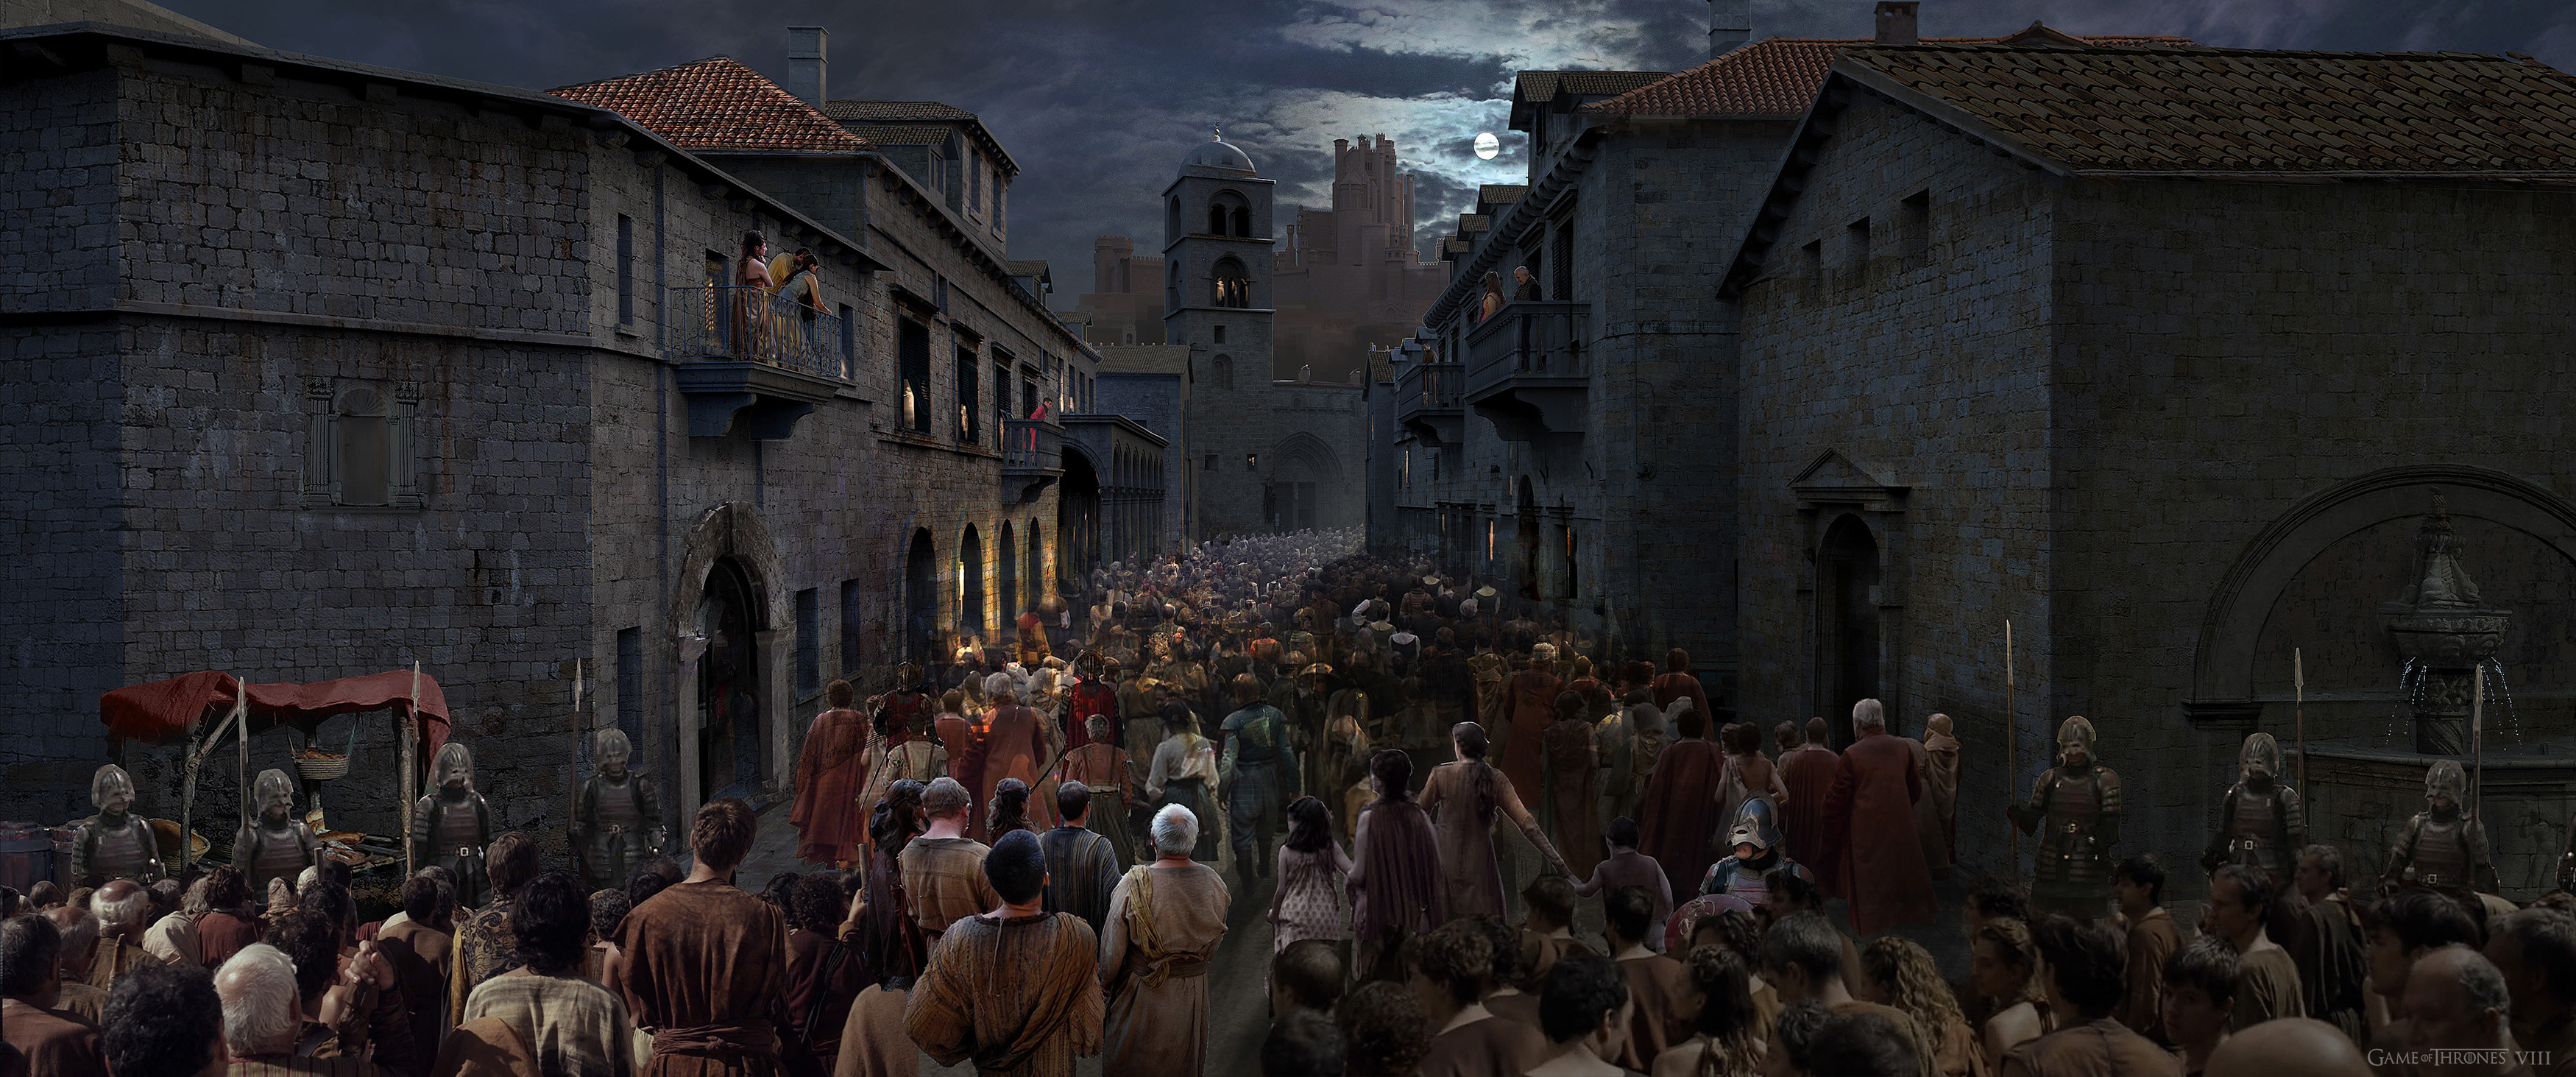 Main street - The masses enter Kingslanding